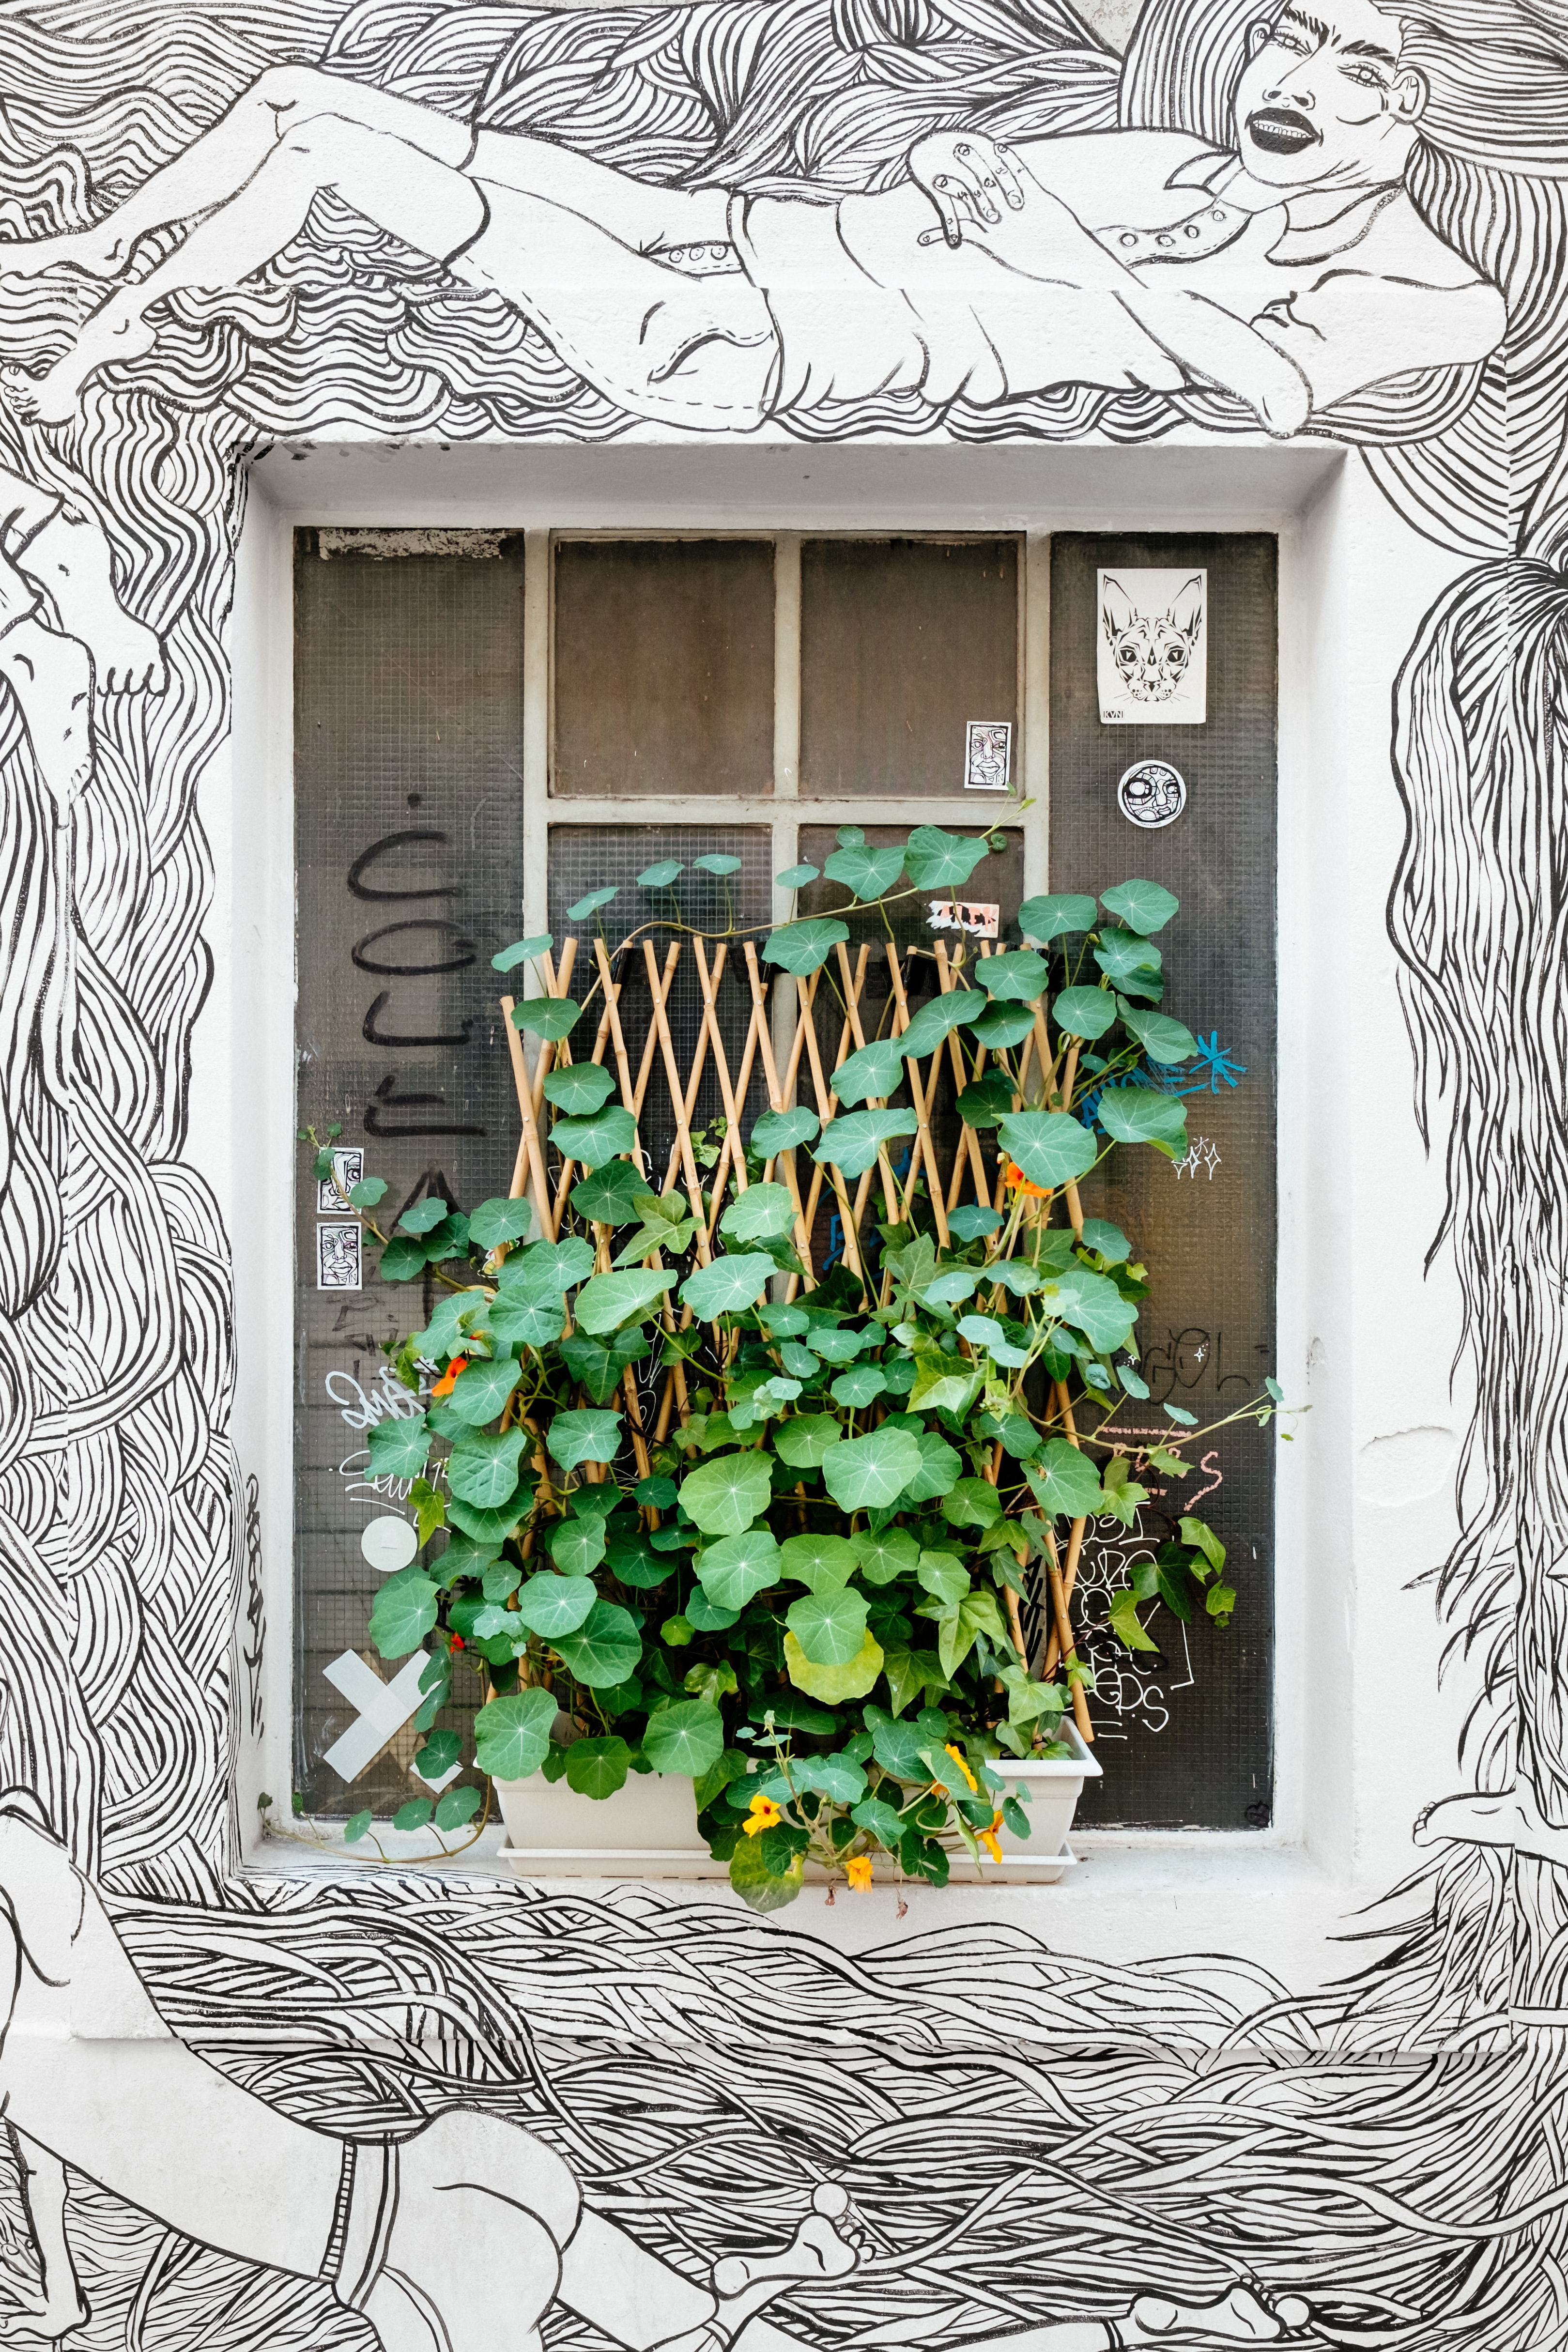 Black and white graffiti surrounding urban window with potted green plant growing on ledge, Geneva